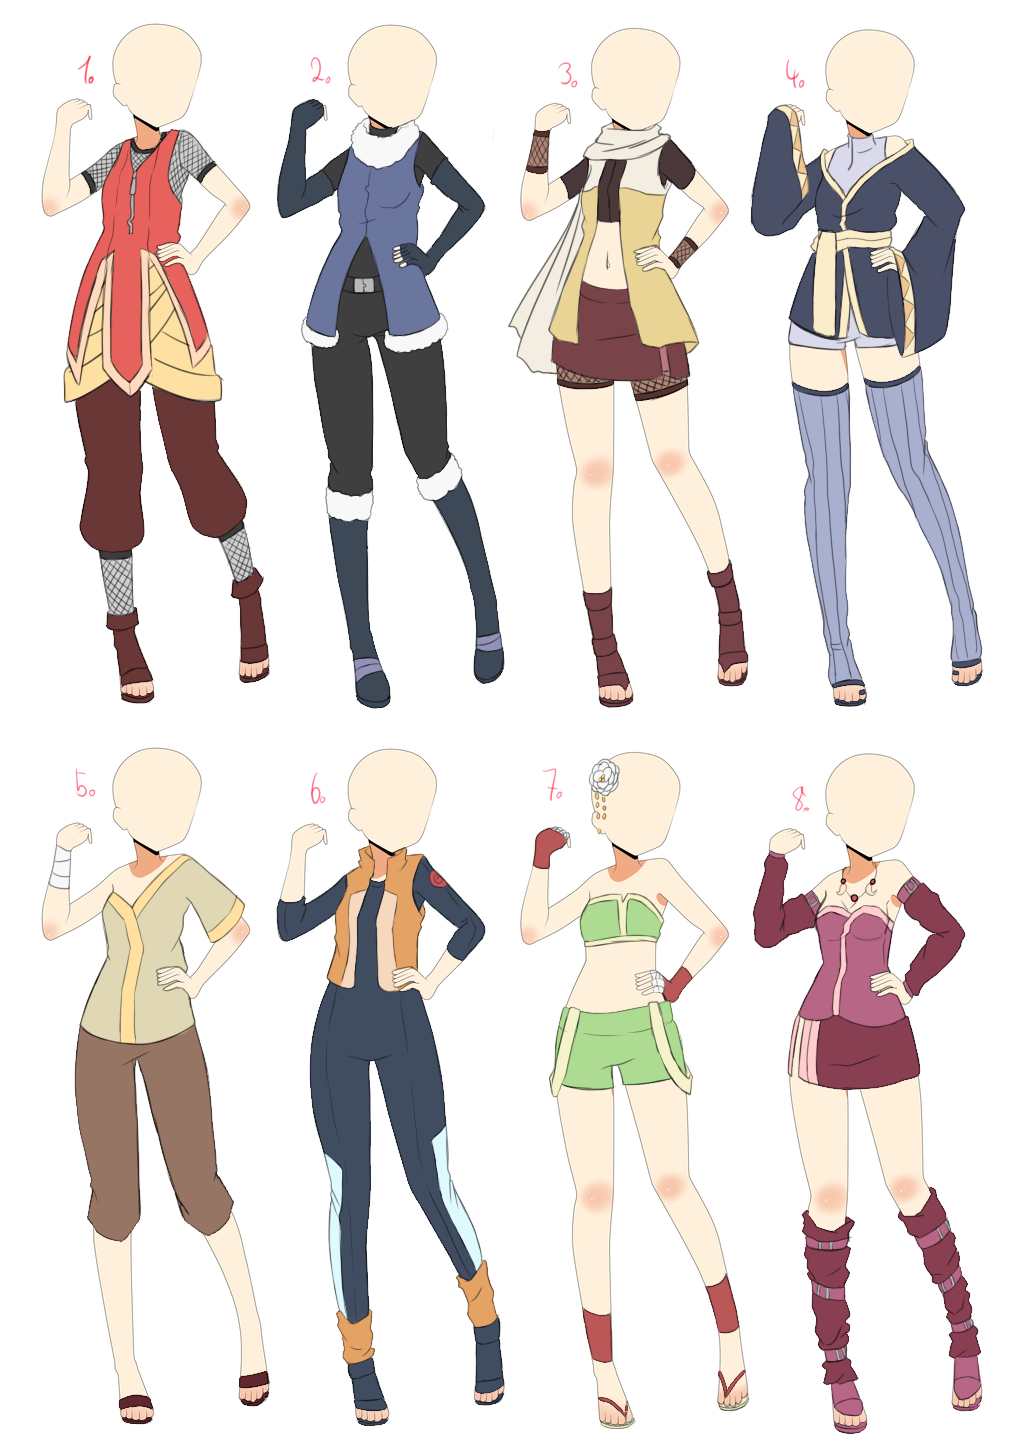 Open Naruto Outfit Batch 2 By Azahana On Deviantart Anime Outfits Ninja Outfit Drawing Anime Clothes